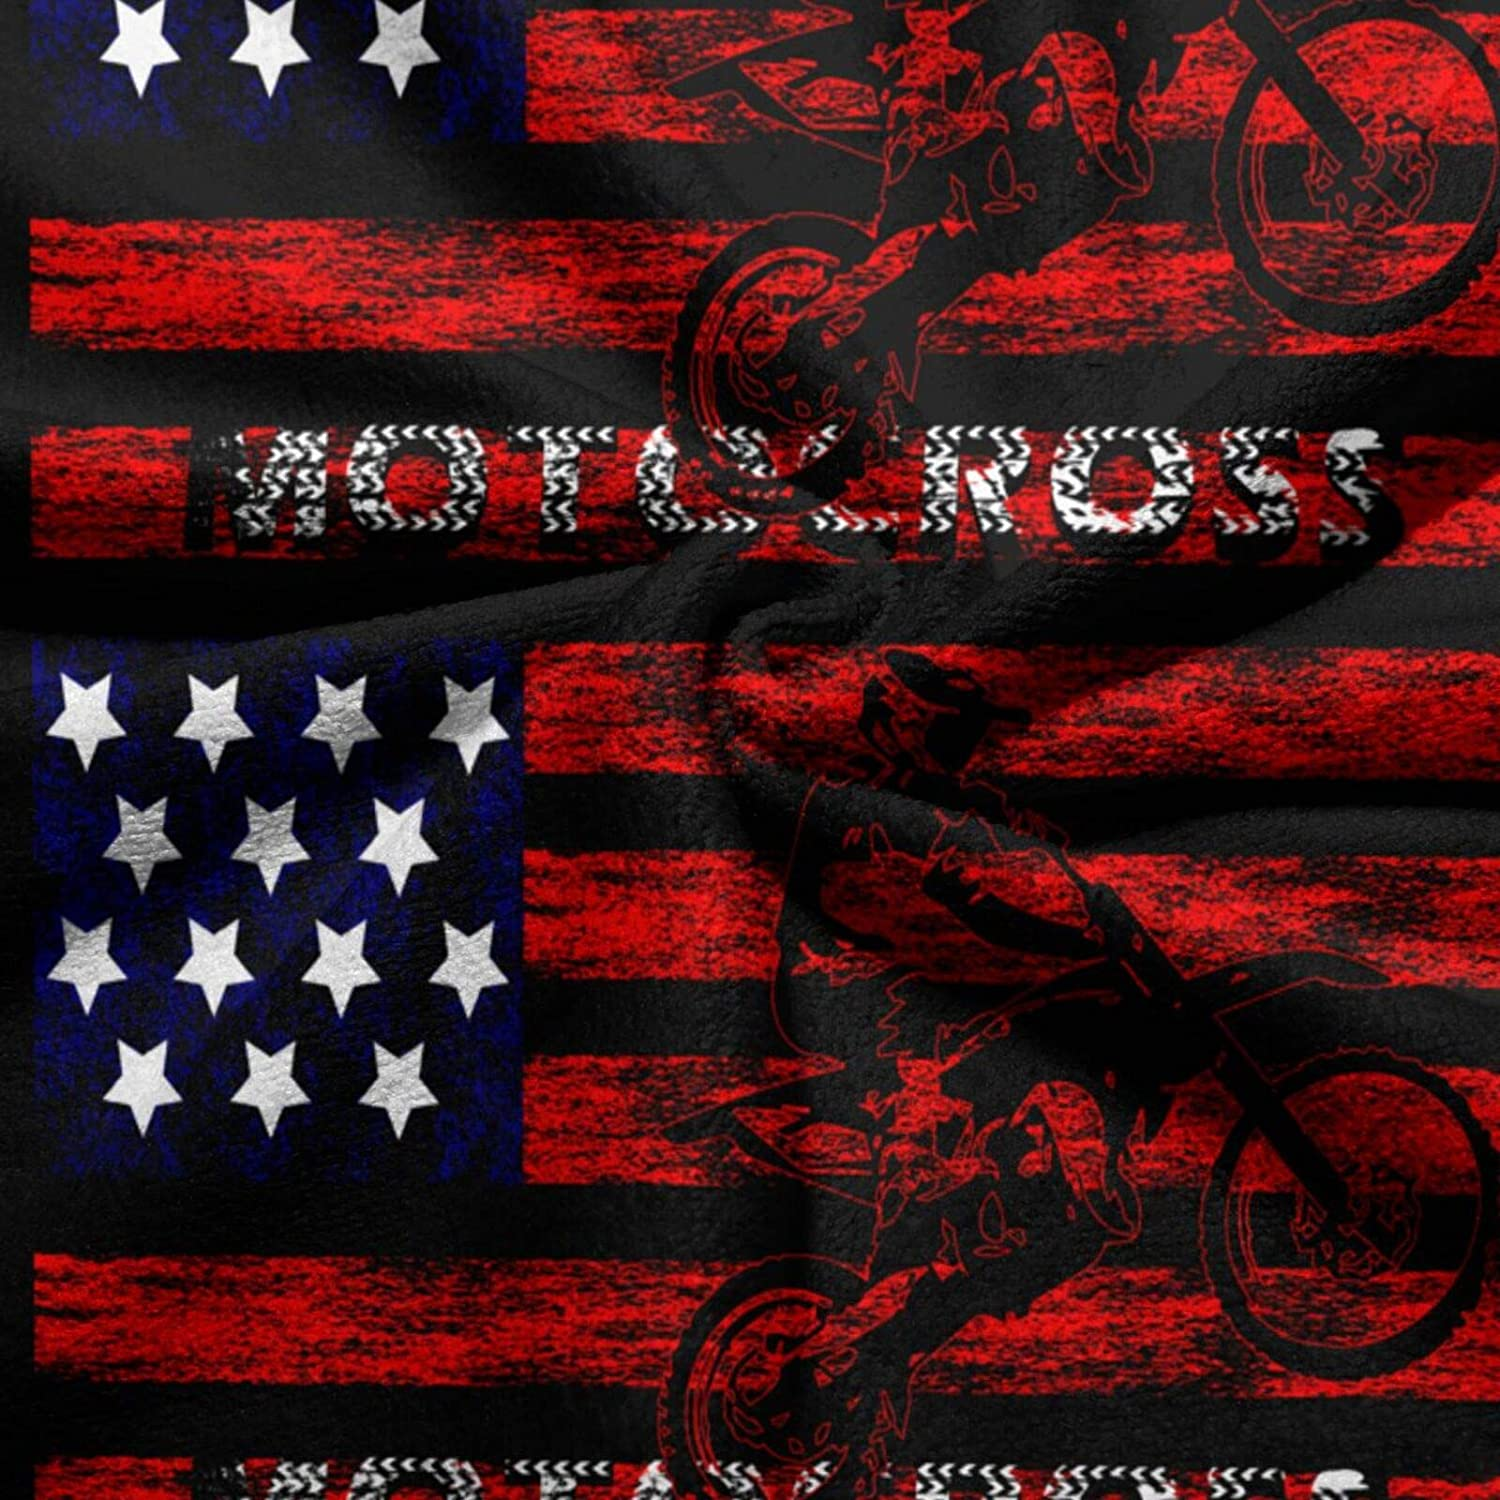 Boys Girls and Adults American Flag with Motocross Superfine Fiber Hand Towels Ultra Soft Beach Towel Pool Bath Towel for Kids